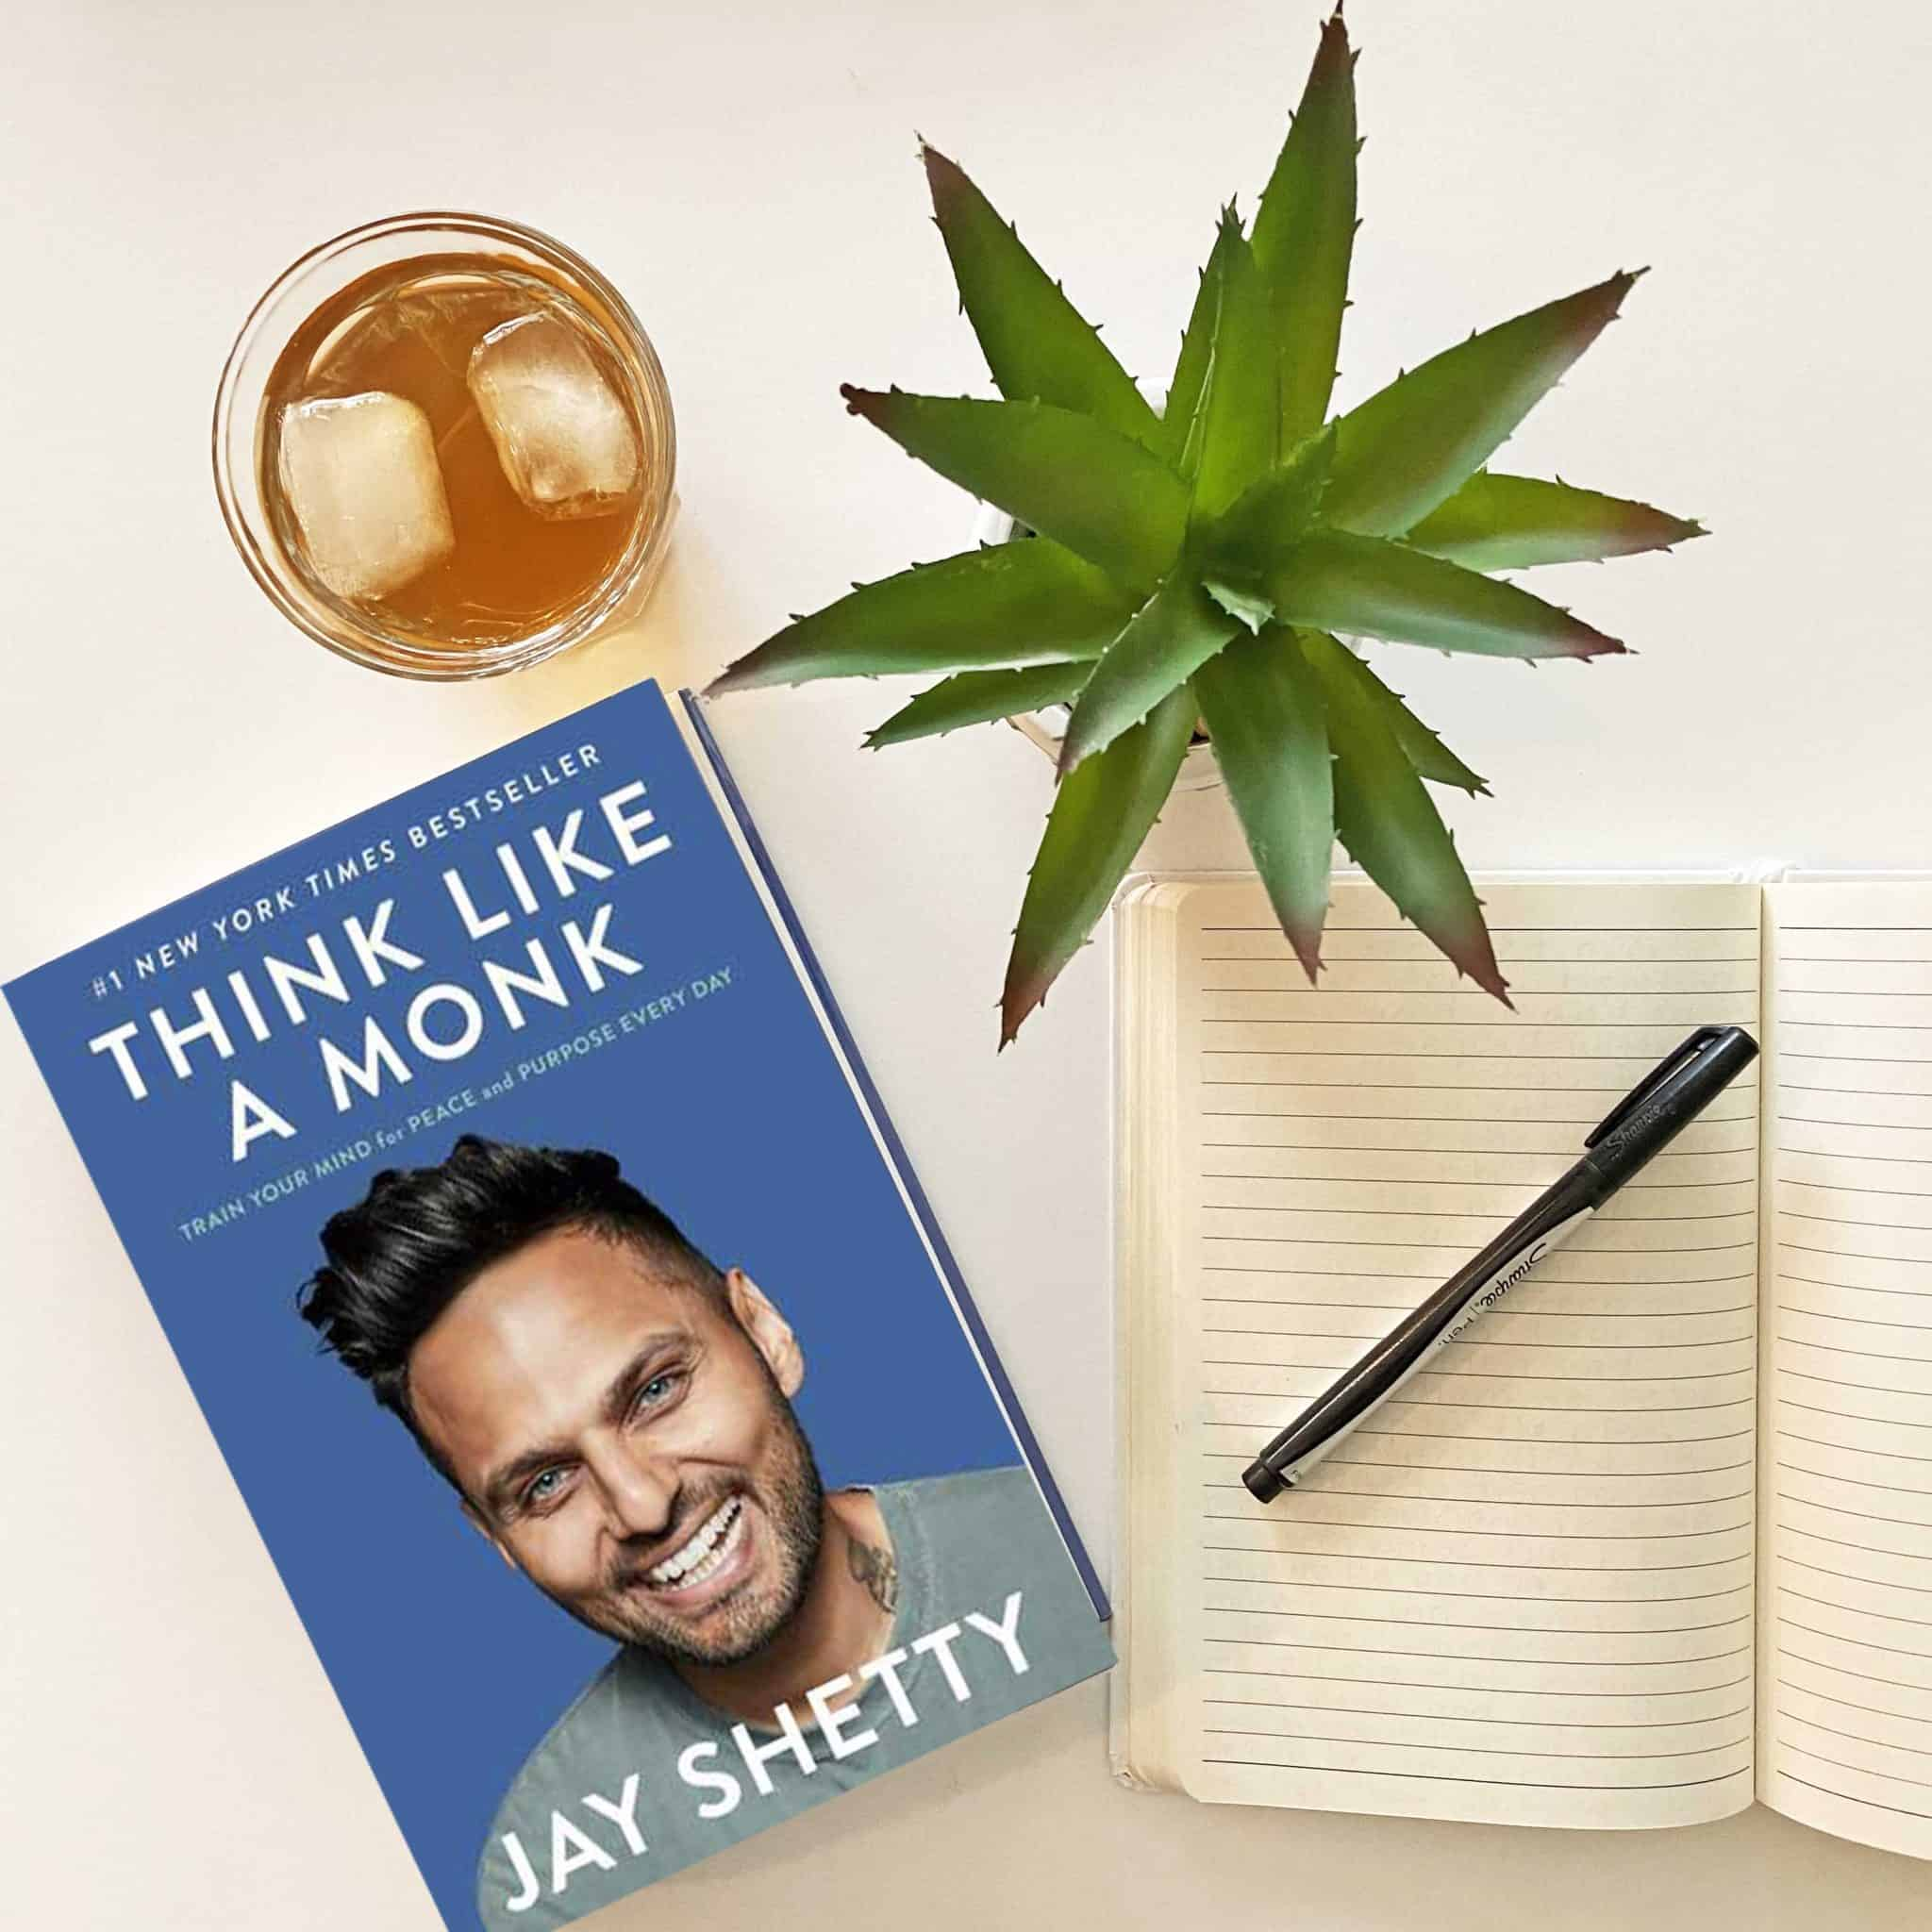 Think like a monk book by Jay Shetty shown with a plant, a journal, a pen and a glass of iced tea